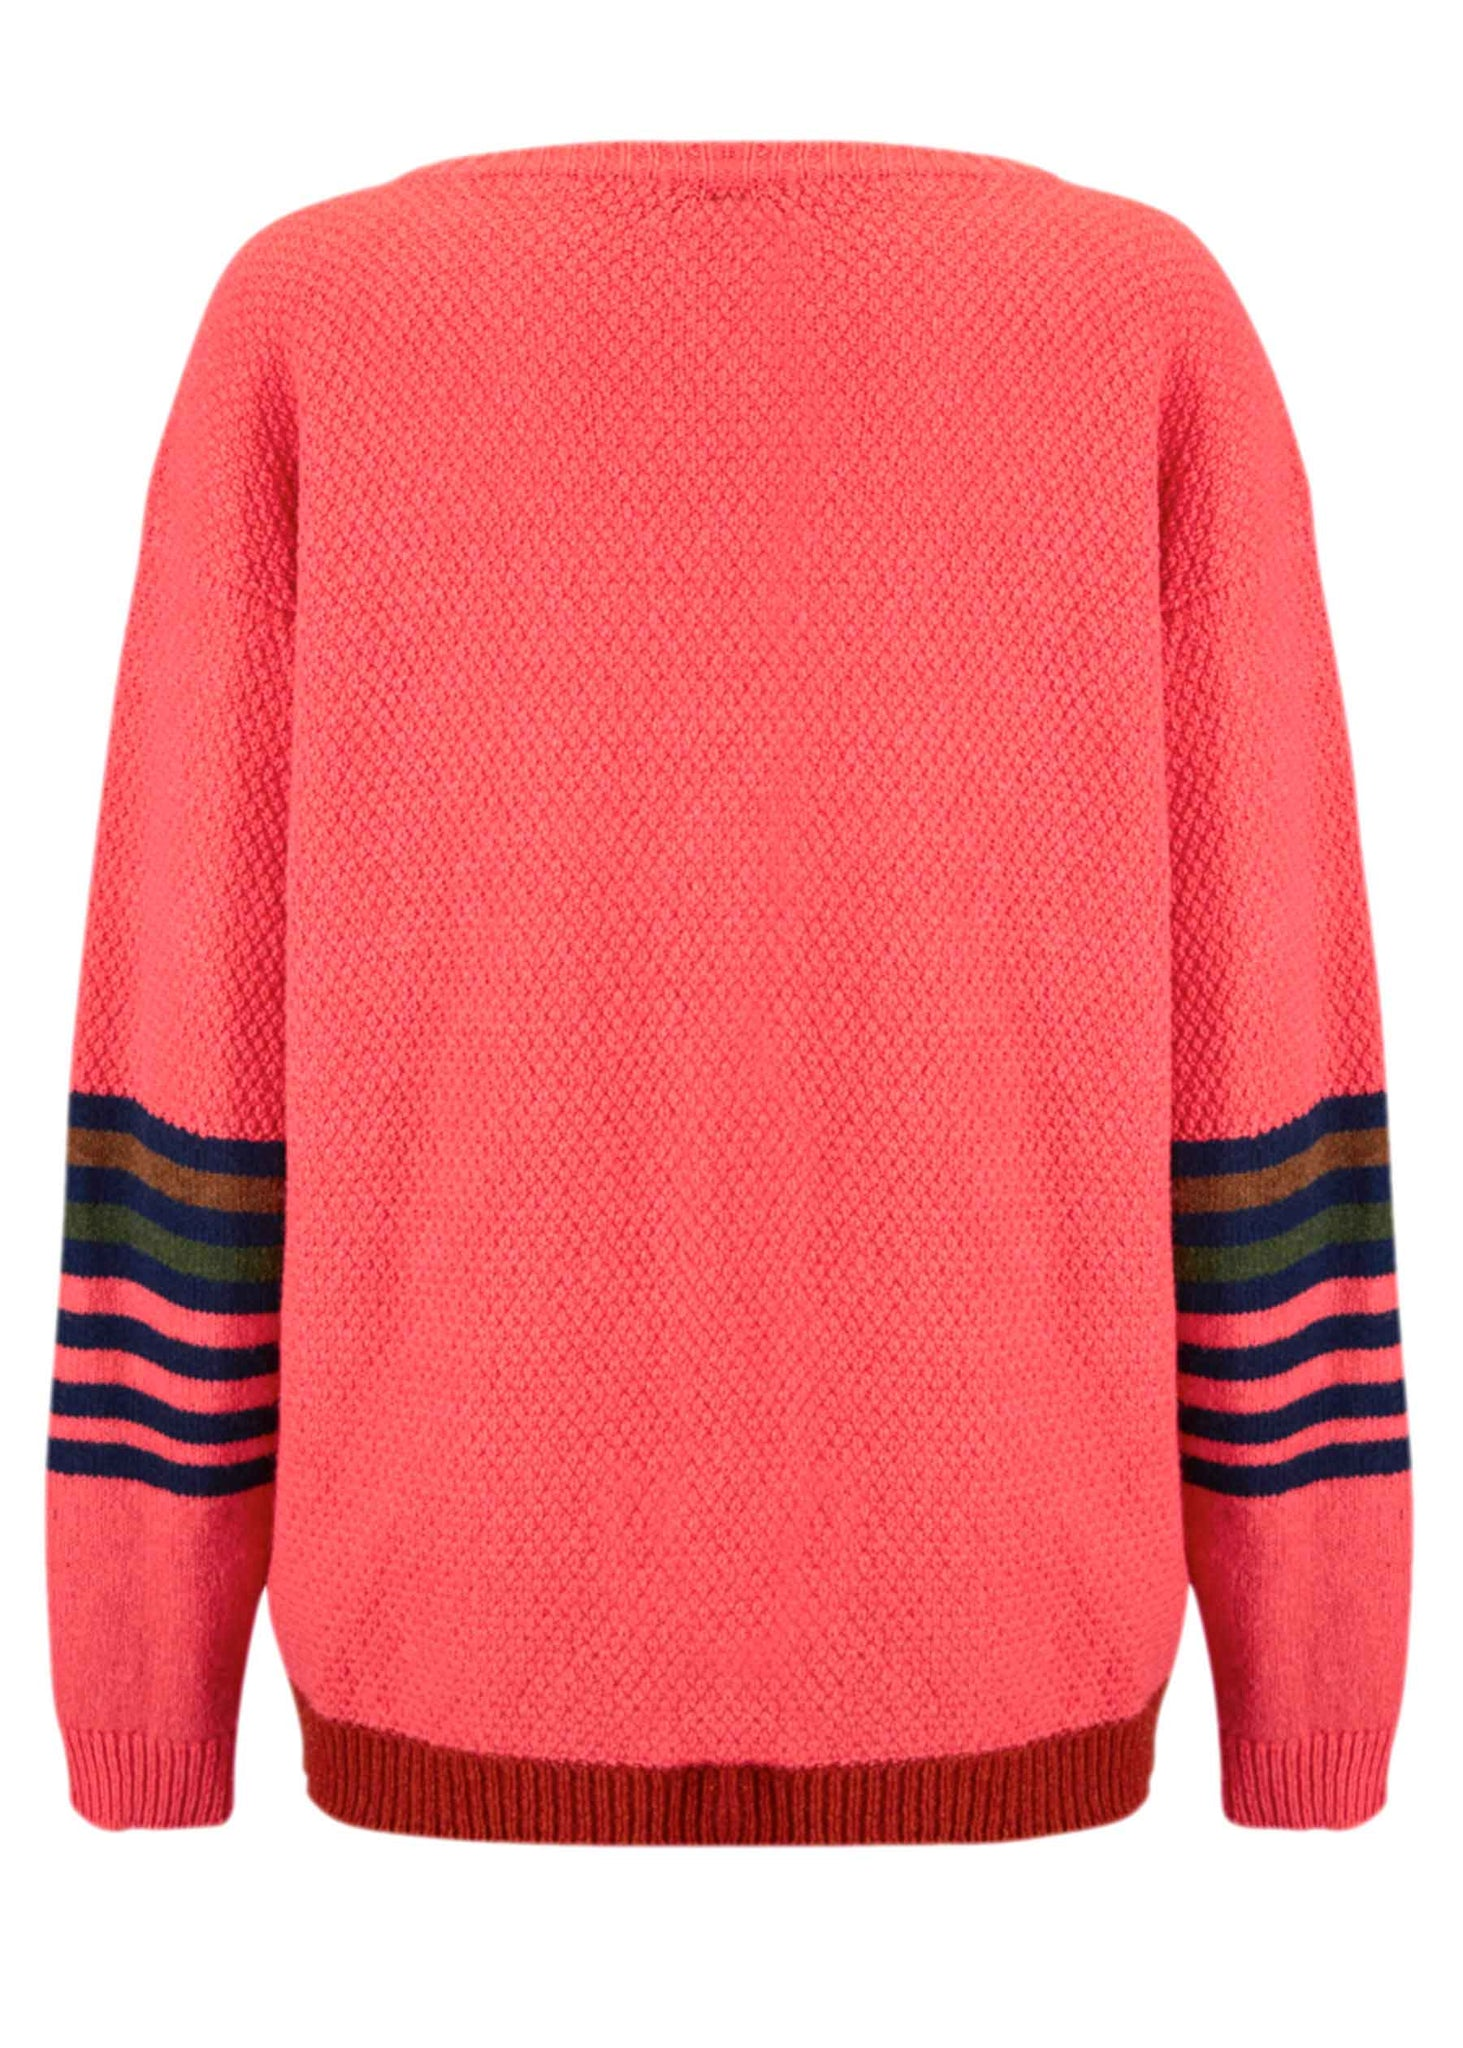 Ace-High Cowgirl Sweater Pink/Navy Reverse